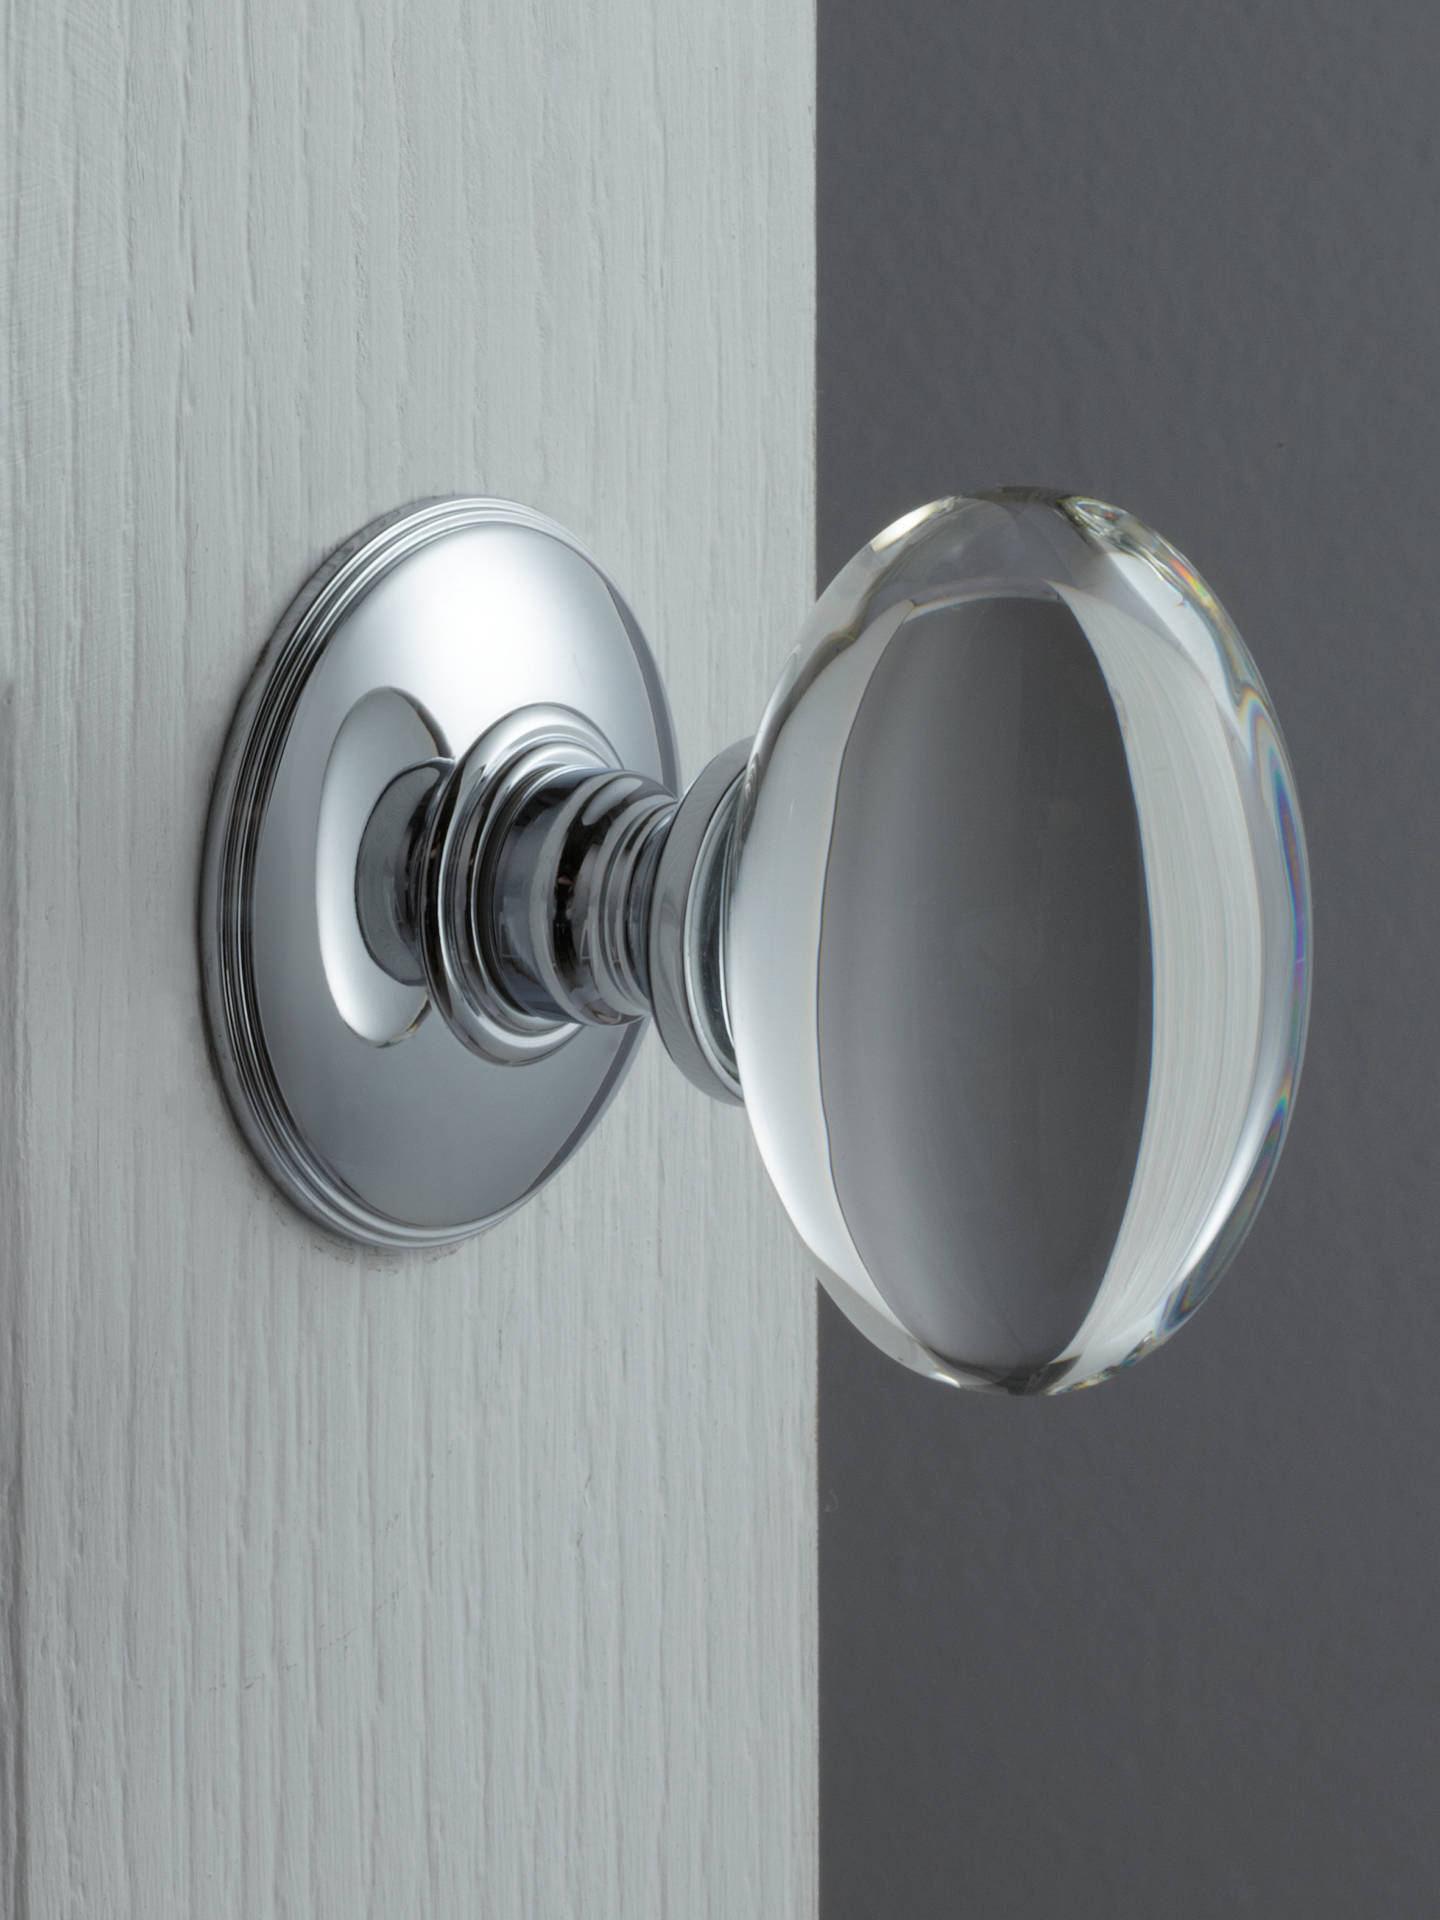 Buy John Lewis & Partners Oval Glass Mortice Knob, Dia.43mm, Pair, Polished Chrome Online at johnlewis.com